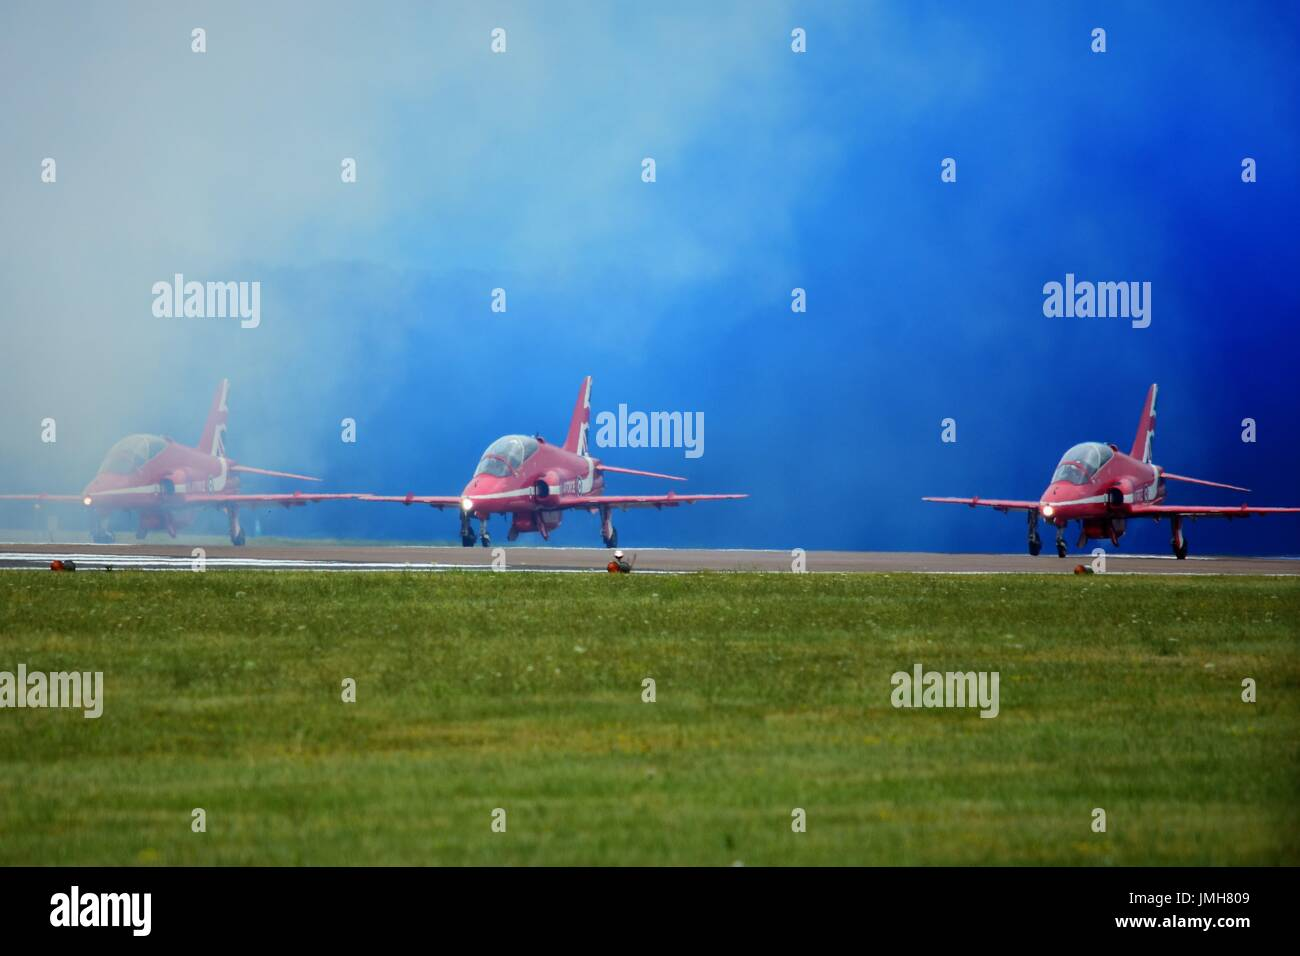 Red Arrows performing at the 2017 Royal International Air Tattoo held annually at RAF Fairford in Fairford, Gloucestershire, UK - Stock Image